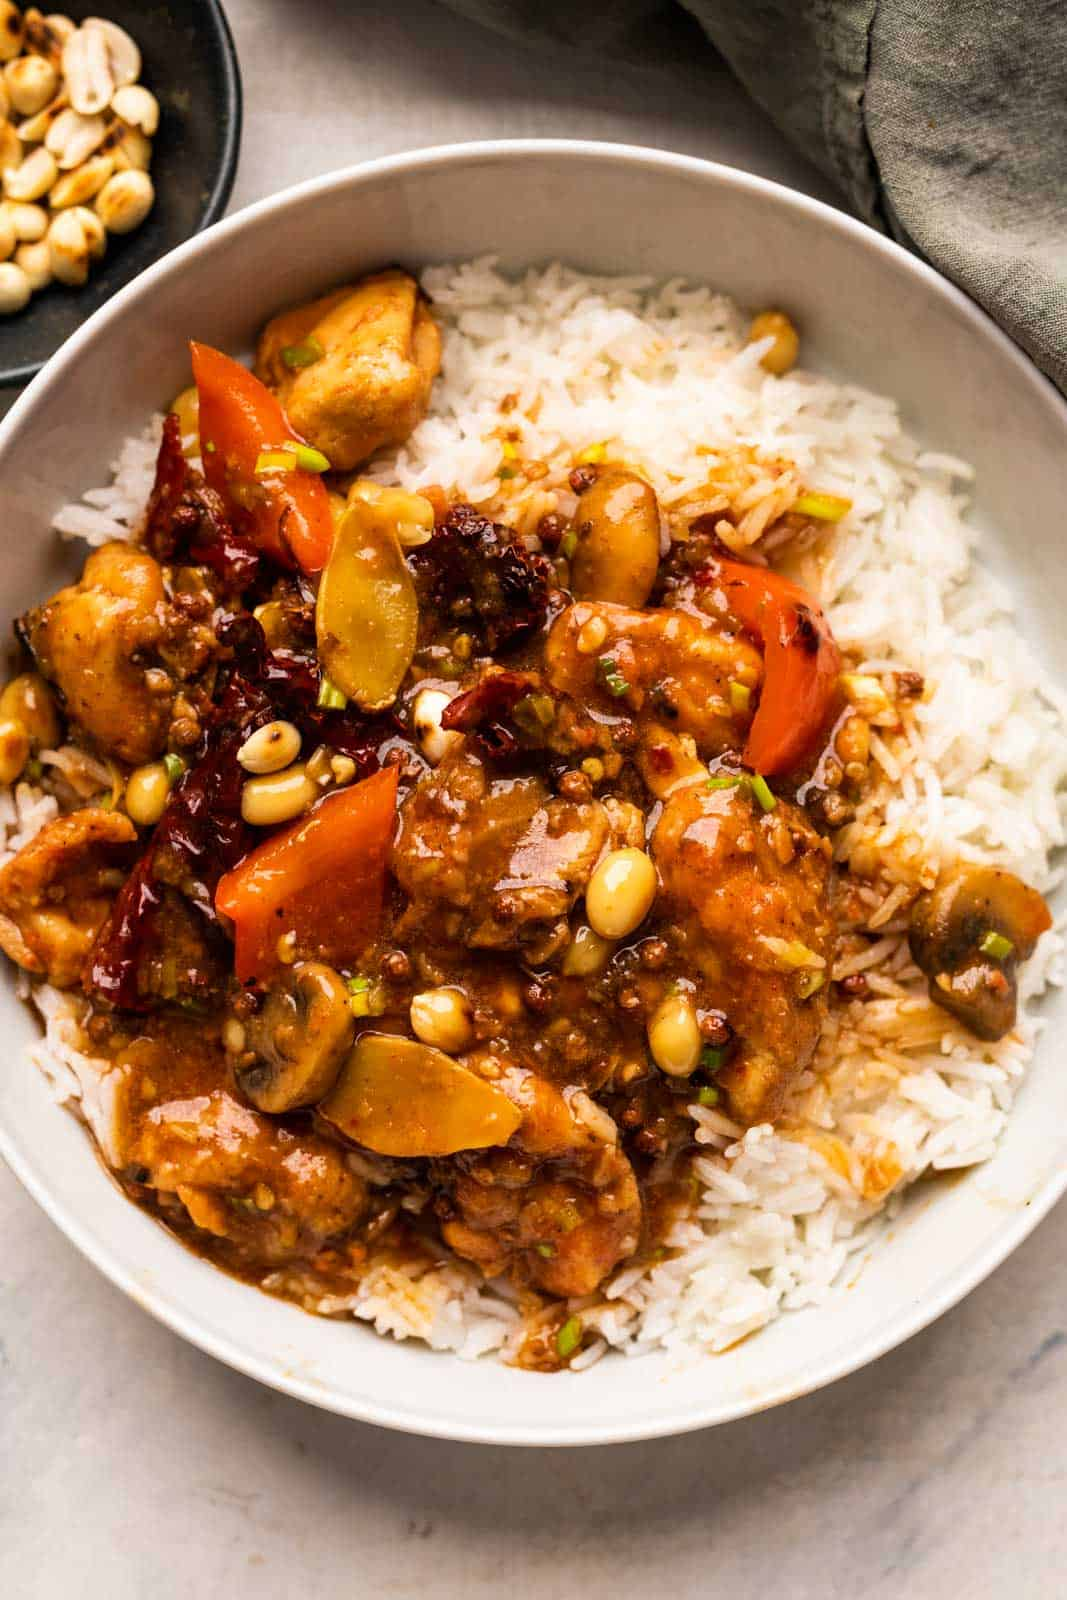 Kung Pao Chicken served over rice in a bowl with peanuts on the side